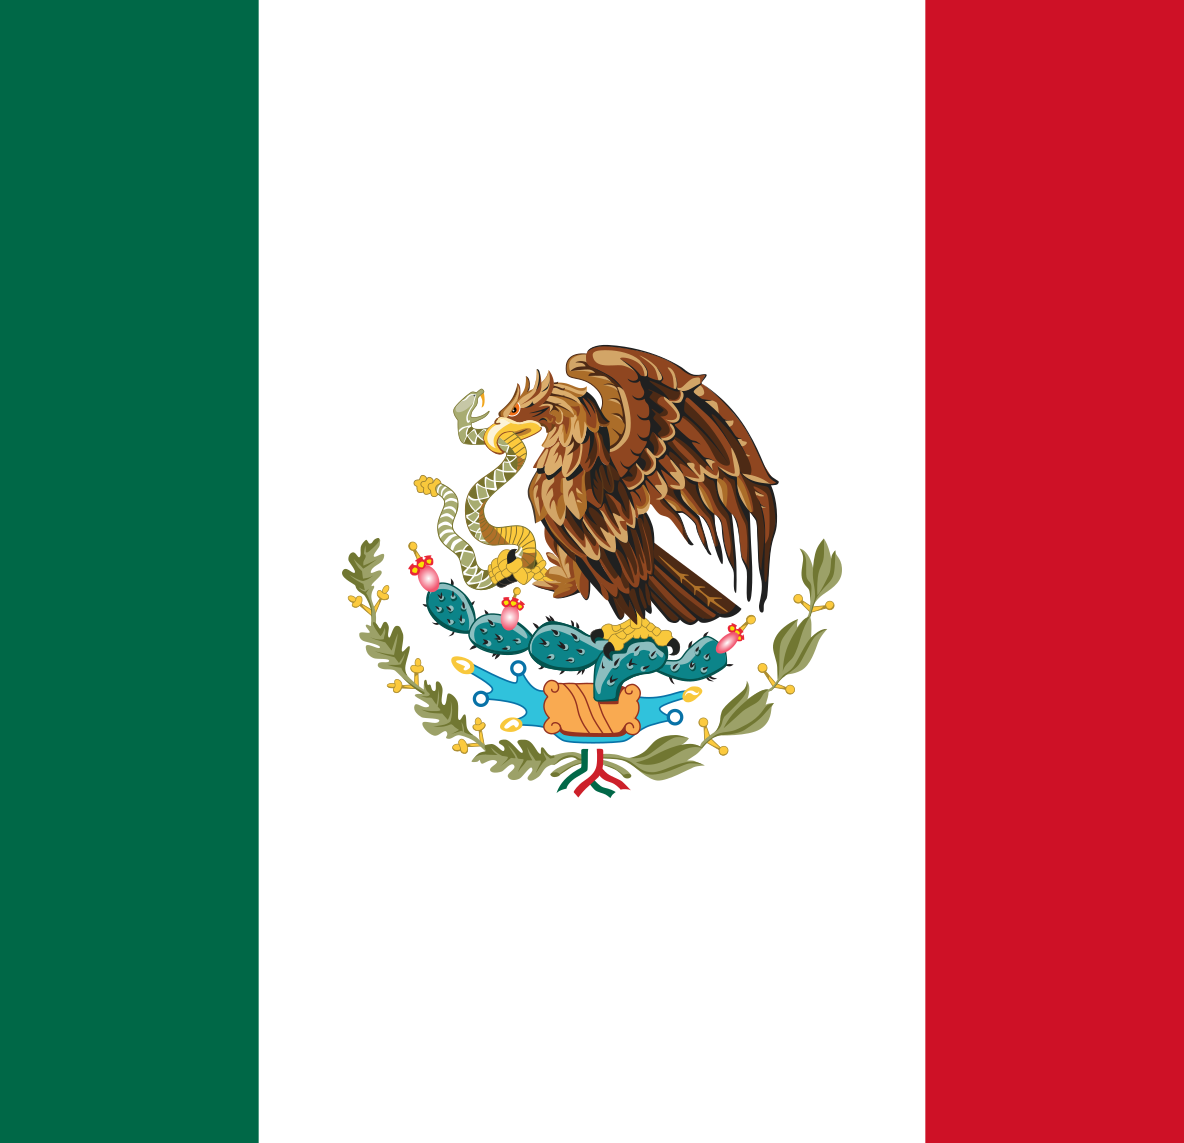 Mexico Market Review, February 2020: Monex reports 14% growth of accrued net revenues